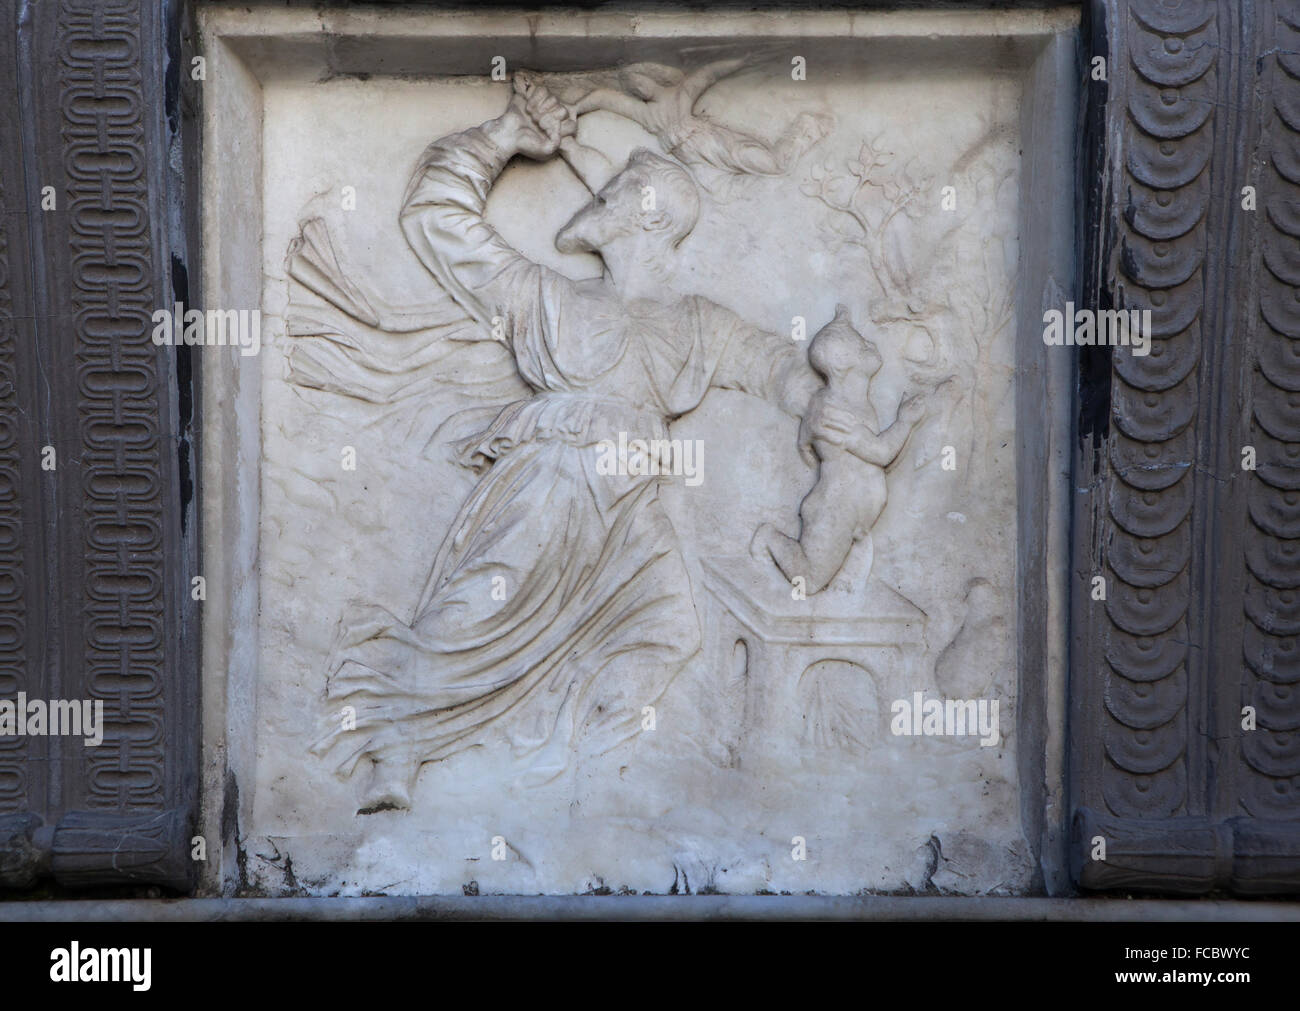 Sacrifice of Isaac. Marble relief by Italian Renaissance sculptor Giovanni Antonio Amadeo on the Cappella Colleoni - Stock Image